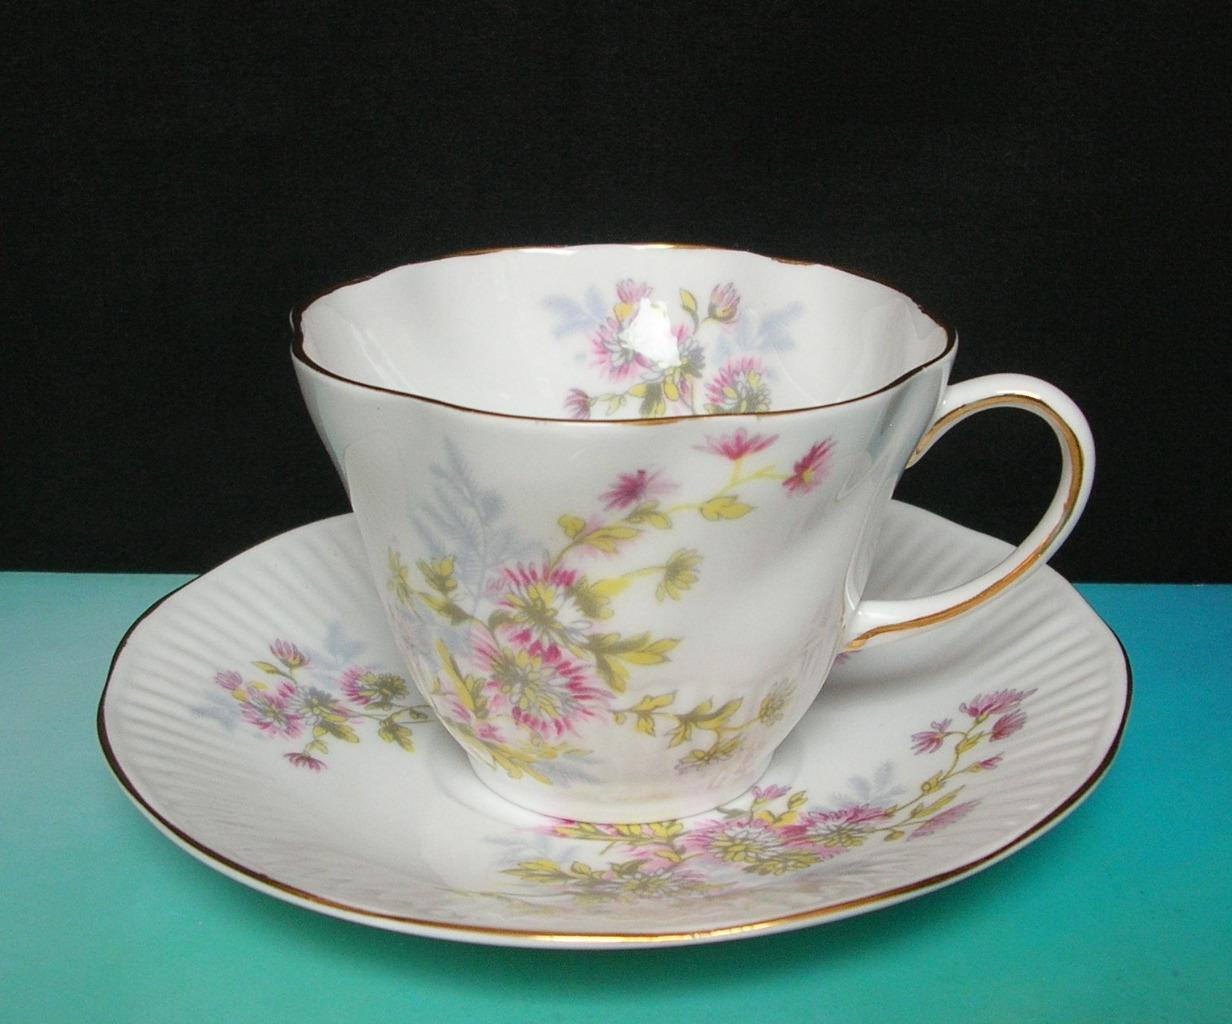 Primary image for Vintage QUEENS ROSINA Bone China TEA CUP & SAUCER Pink Yellow Floral Scalloped